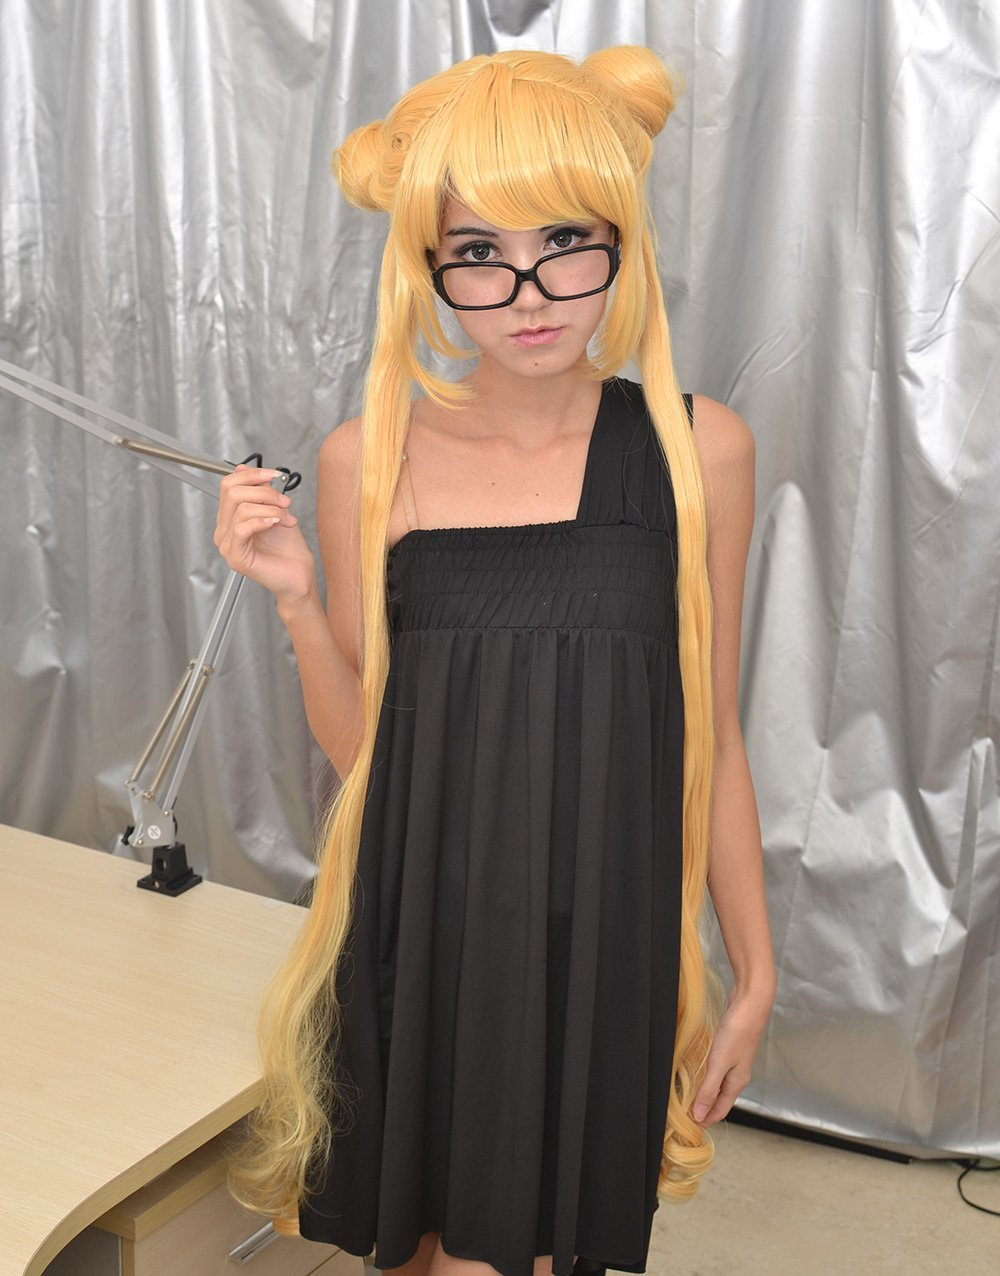 Amazon.com : SureWells Sailor Moon Golden Long Wig 2x Ponytails Wigs Hair Extension : Hair Replacement Wigs : Beauty